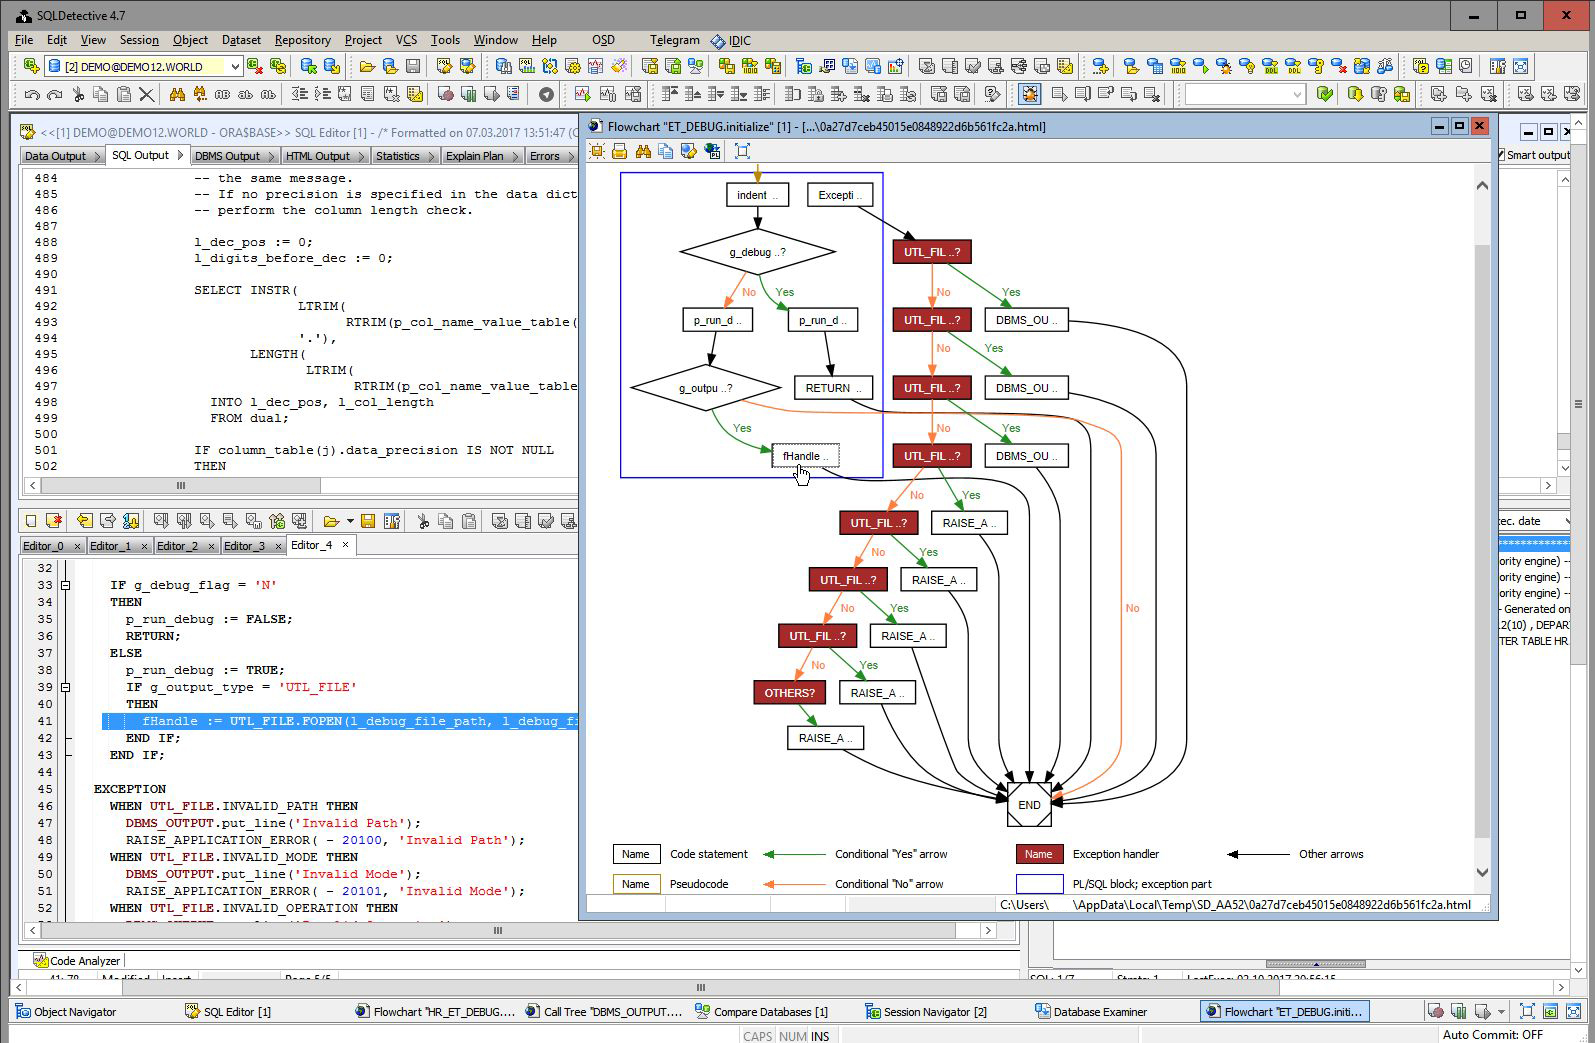 Where can I find decent visio templatesdiagrams for